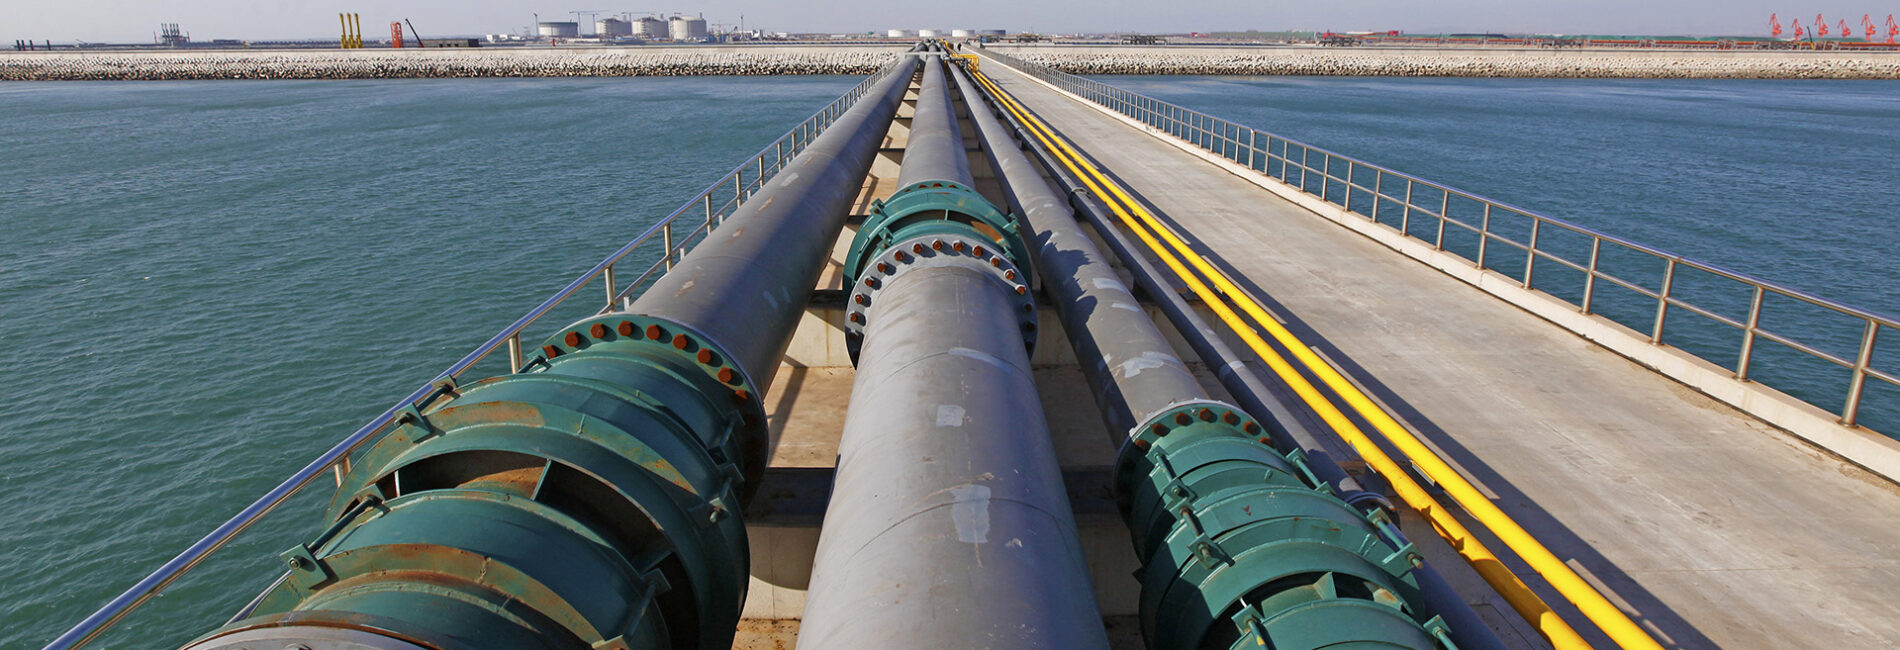 Liquid pipelines; Shutterstock ID 200564114; PO: IHS Inc. ; Job: Image Library; Client: Energy/IHS